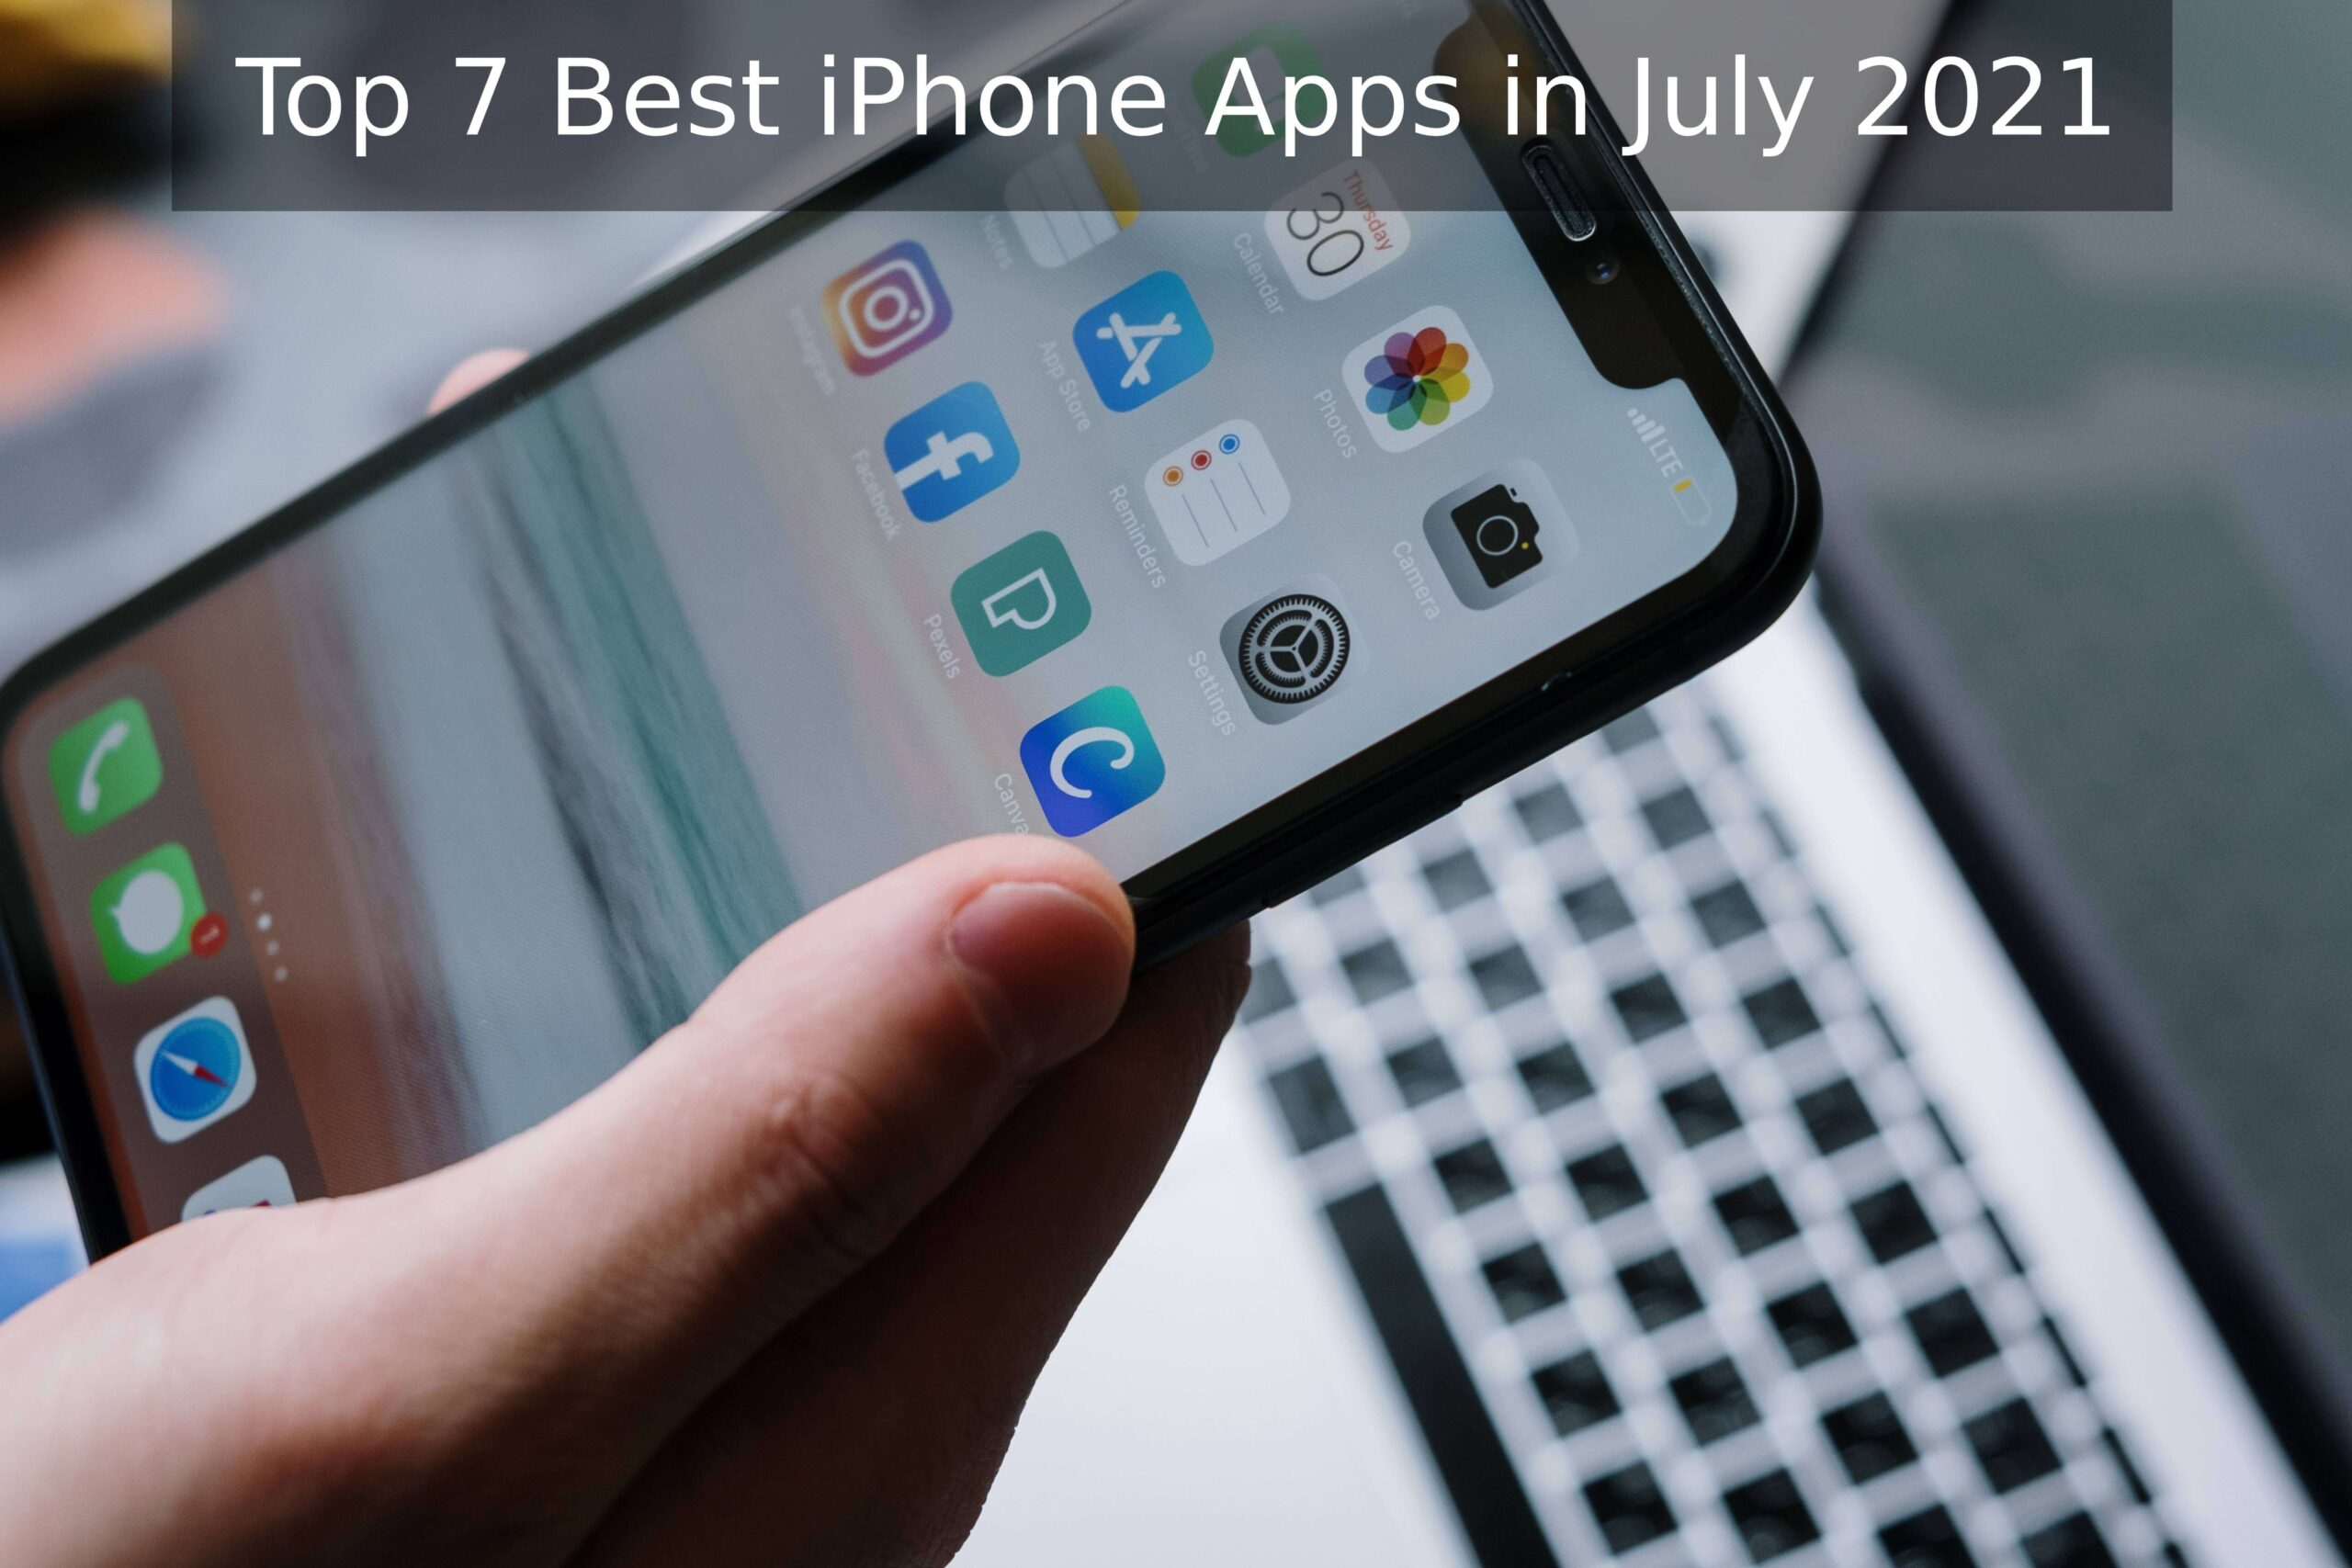 Top 7 Best iPhone Apps in July 2021